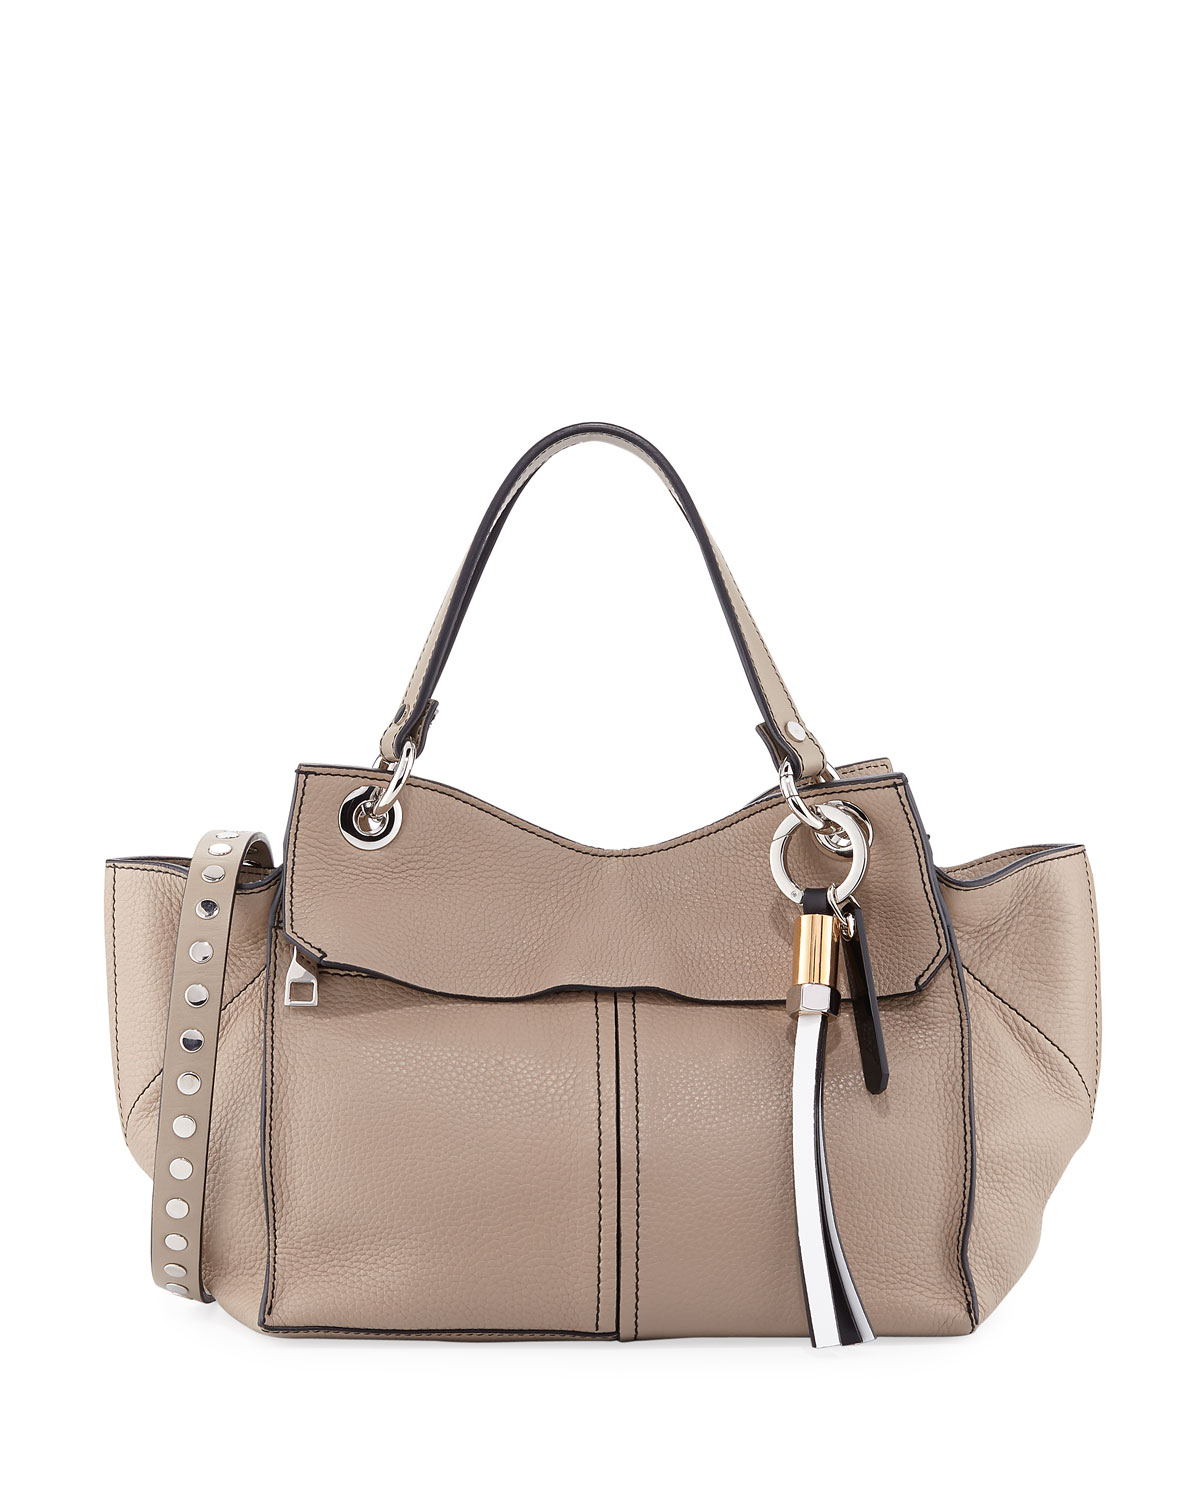 Curl Pebbled Leather Top Handle Bag